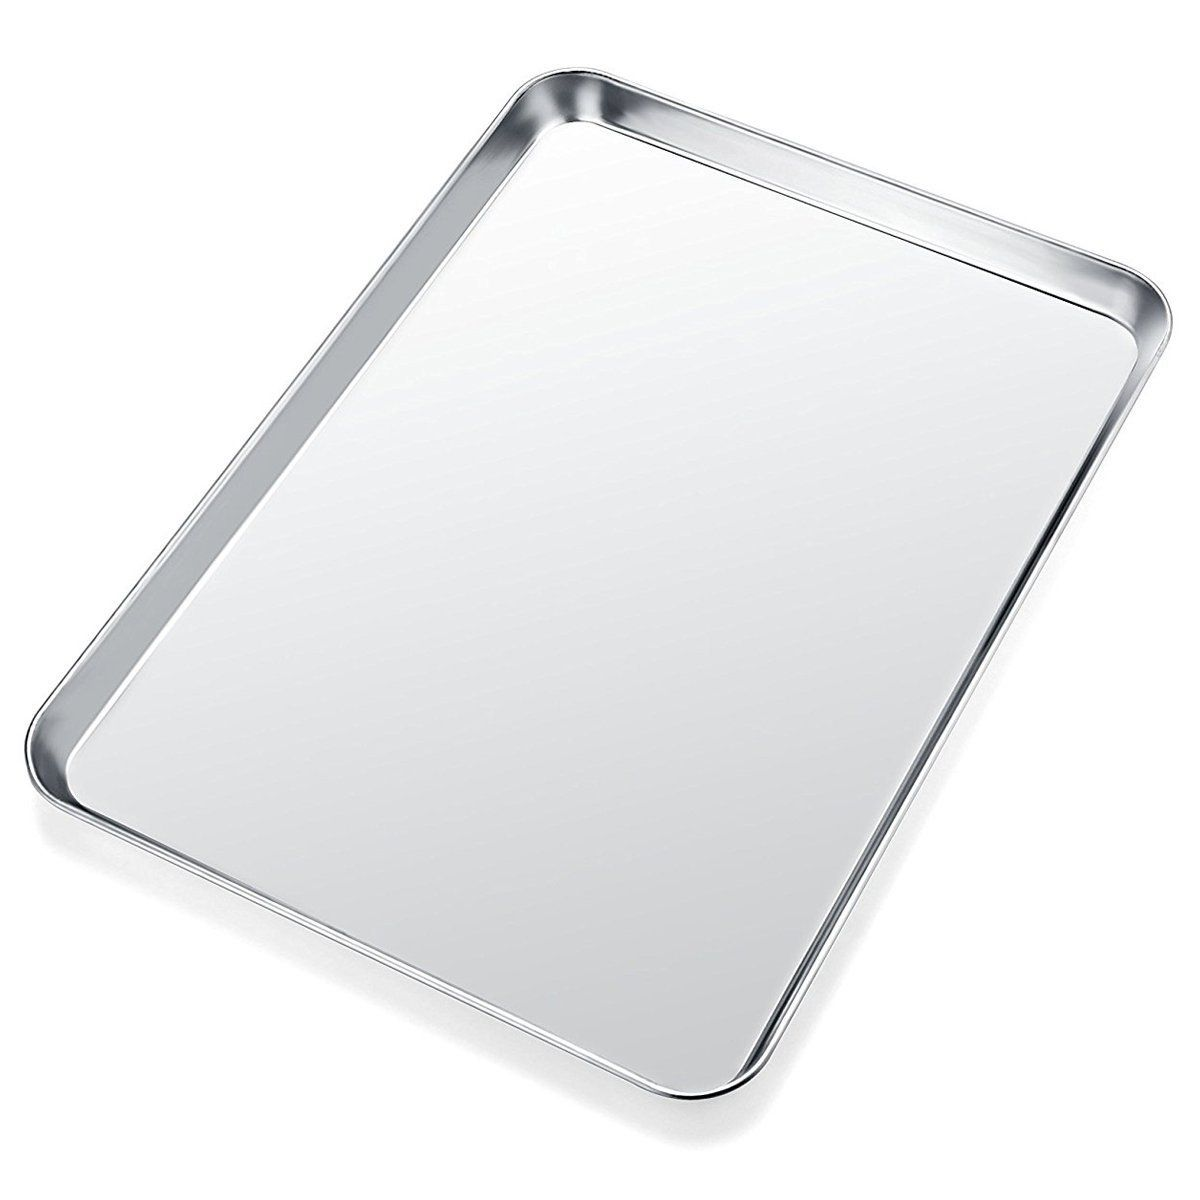 Baking Sheet Yododo Stainless Steel Baking Pan Cookie Sheet Rectangle Size 16 X 12 X 1 Inch Healthy And With Images Stainless Steel Oven Easy Cleaning Clean Dishwasher